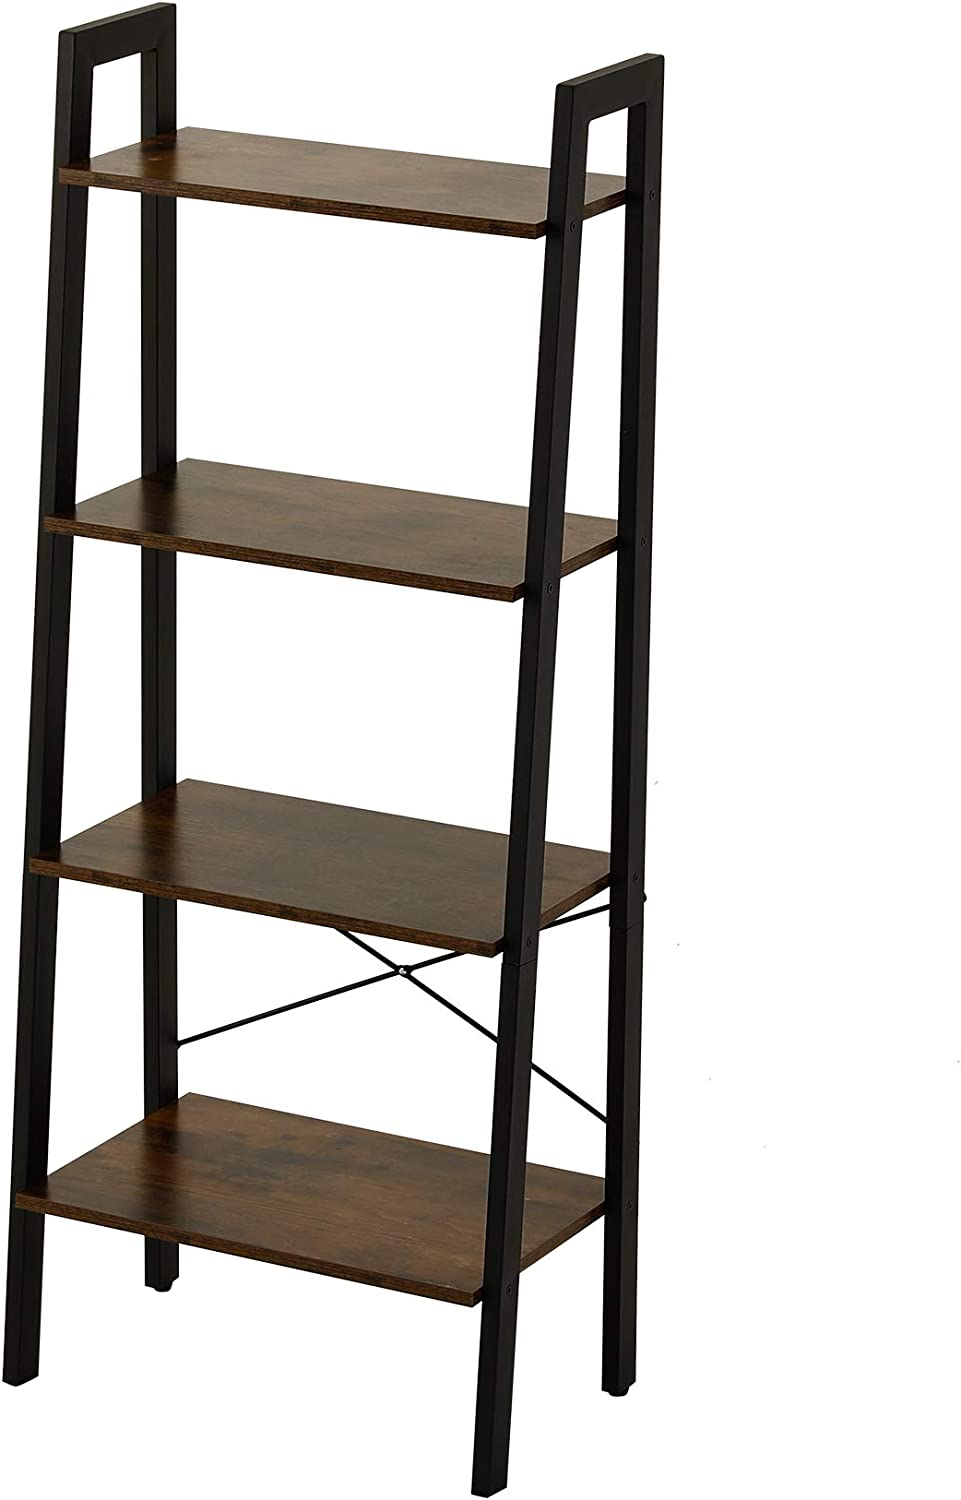 "CO-Z 54"" 4-Tier Industrial Rustic Ladder Shelf Bookshelf with Storage Shelves, Stable Metal Frame Bookcase Rack Shelf for Living Room, Kitchen and Balcony, Easy to Assemble"